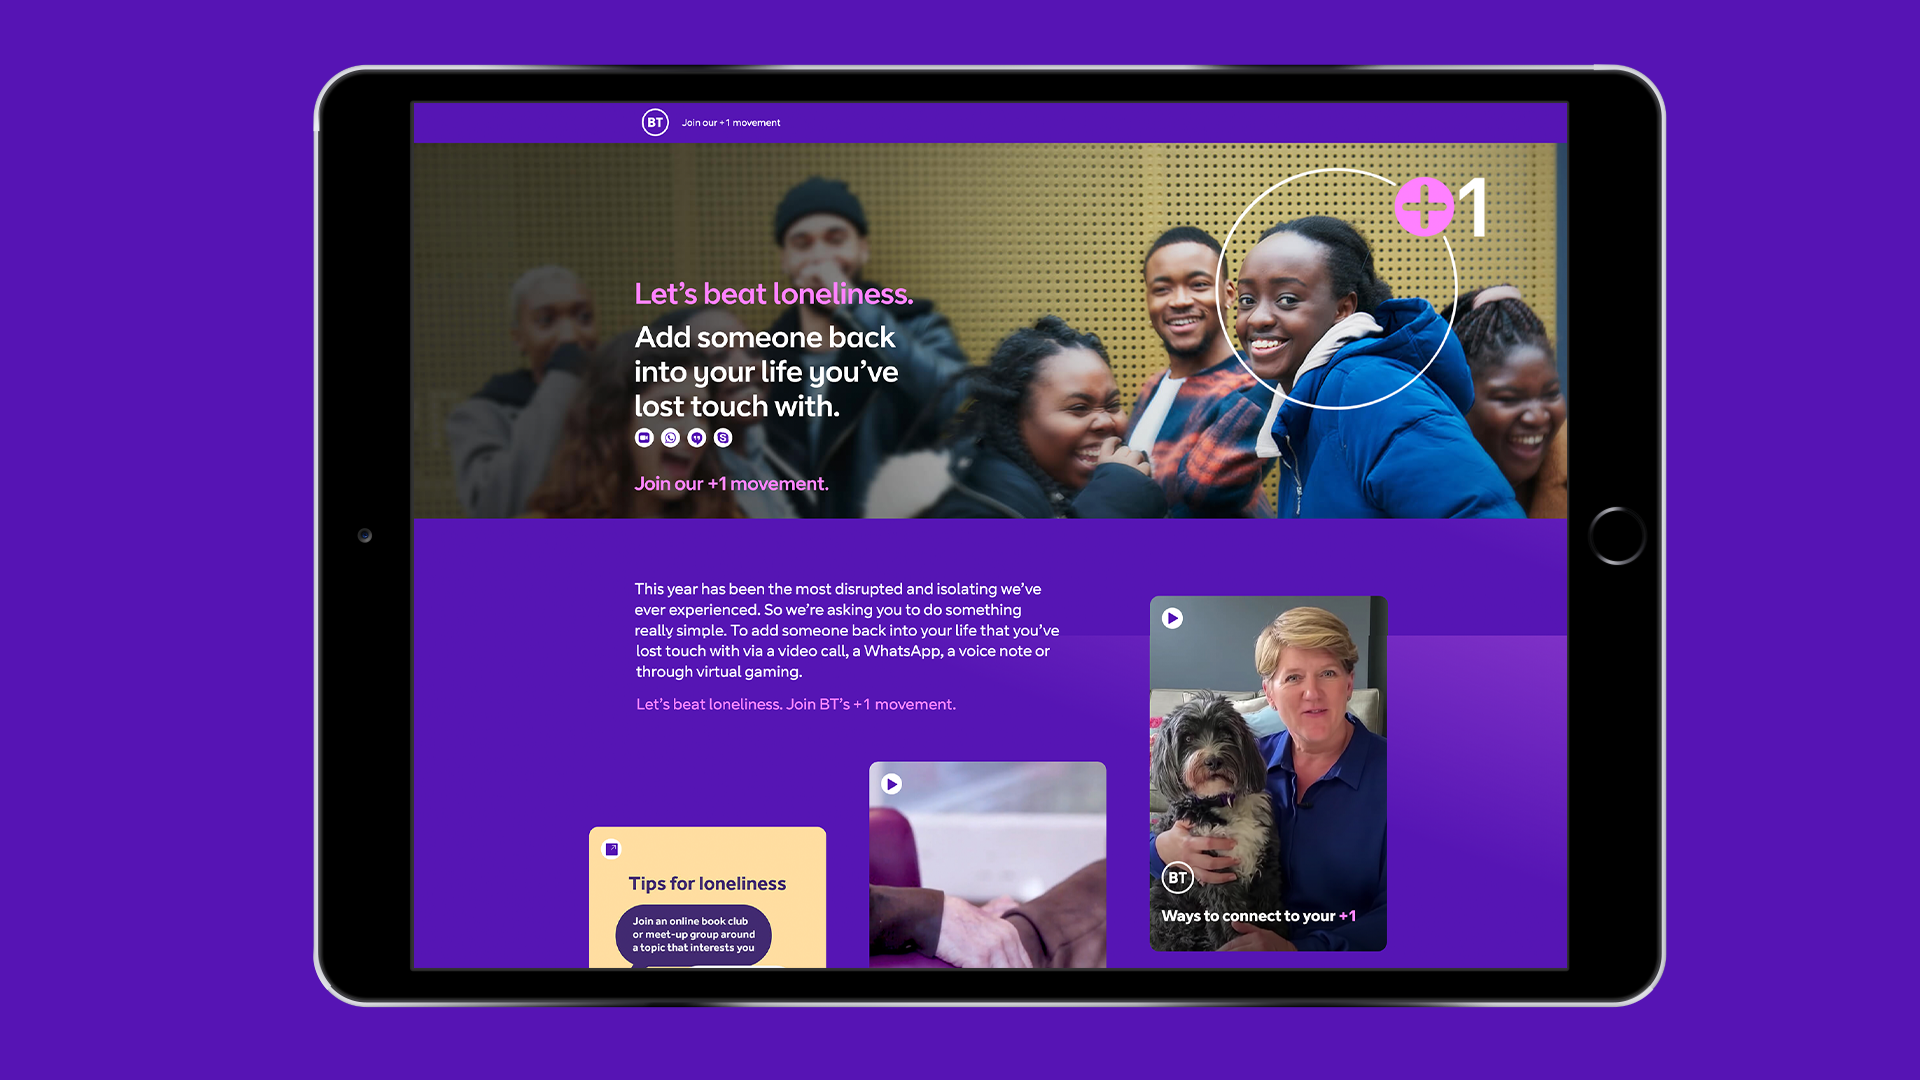 BT: +1 Hub encourages public to connect with others